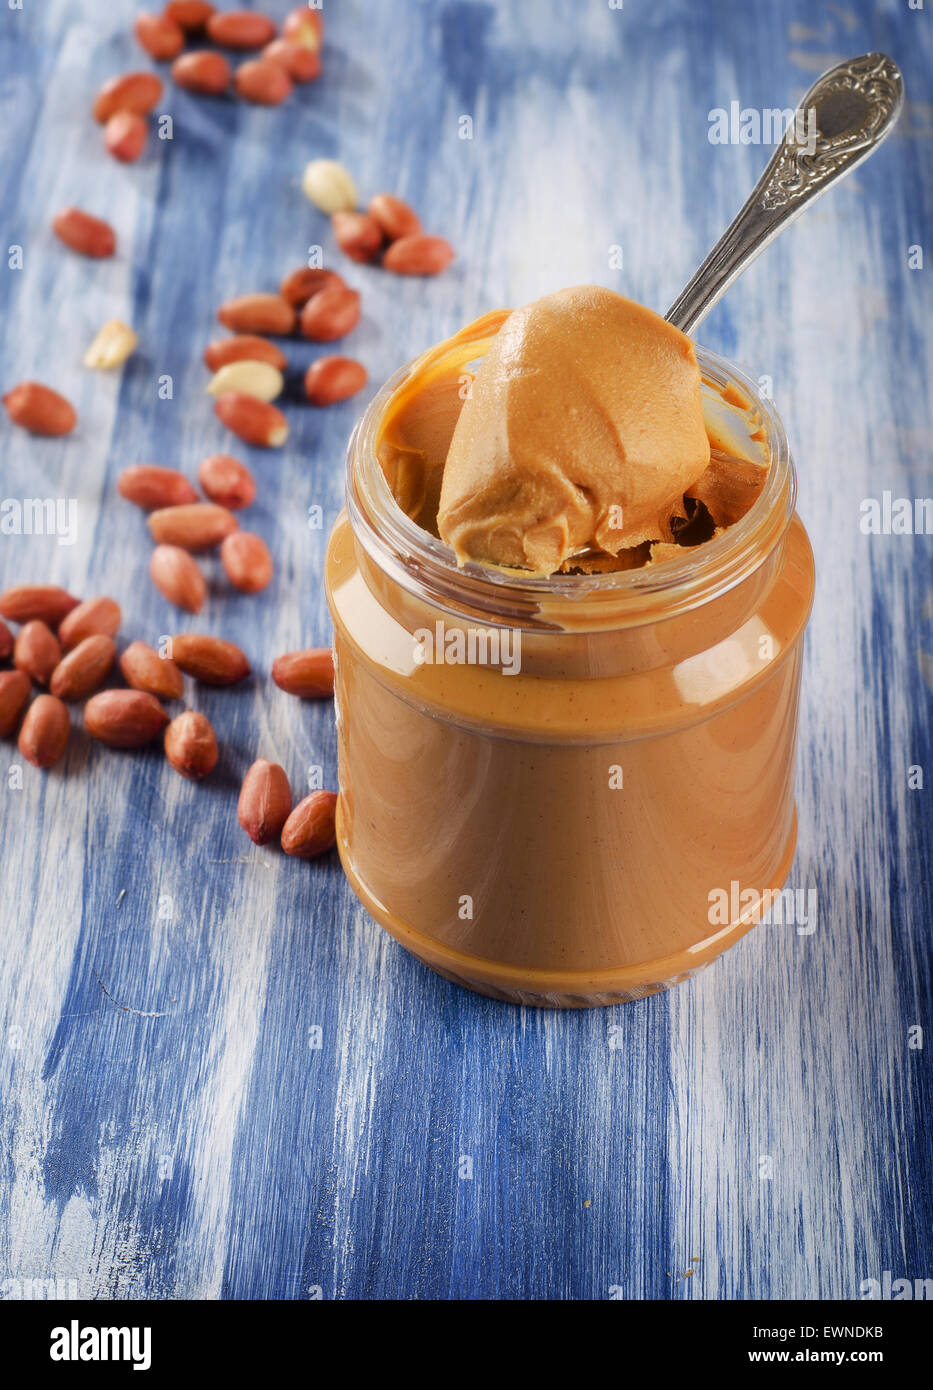 Peanut butter in  jar with peanuts.  Shallow dof. - Stock Image